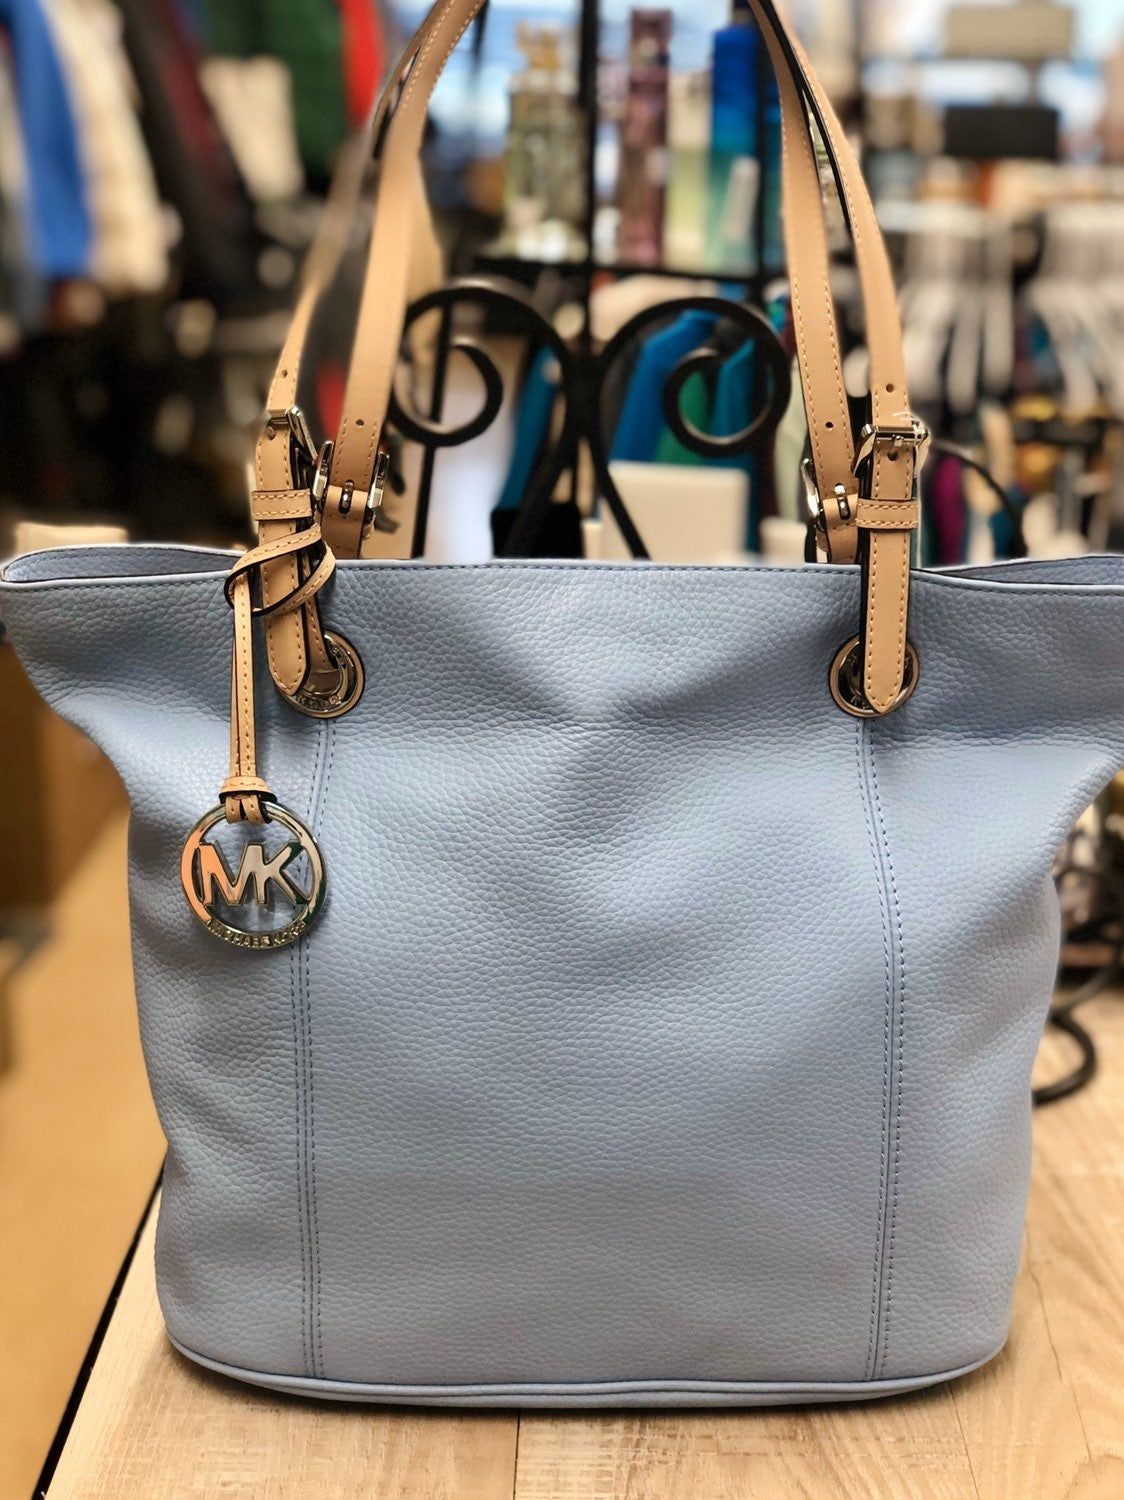 Light Blue Mk Purse In Excellent Condition Hardly Used Purses Michael Kors Michael Kors Shoulder Bag Purses